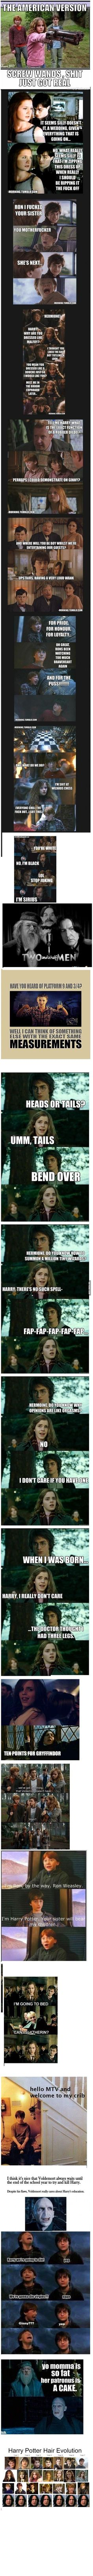 For the love of 9gag http://ibeebz.com